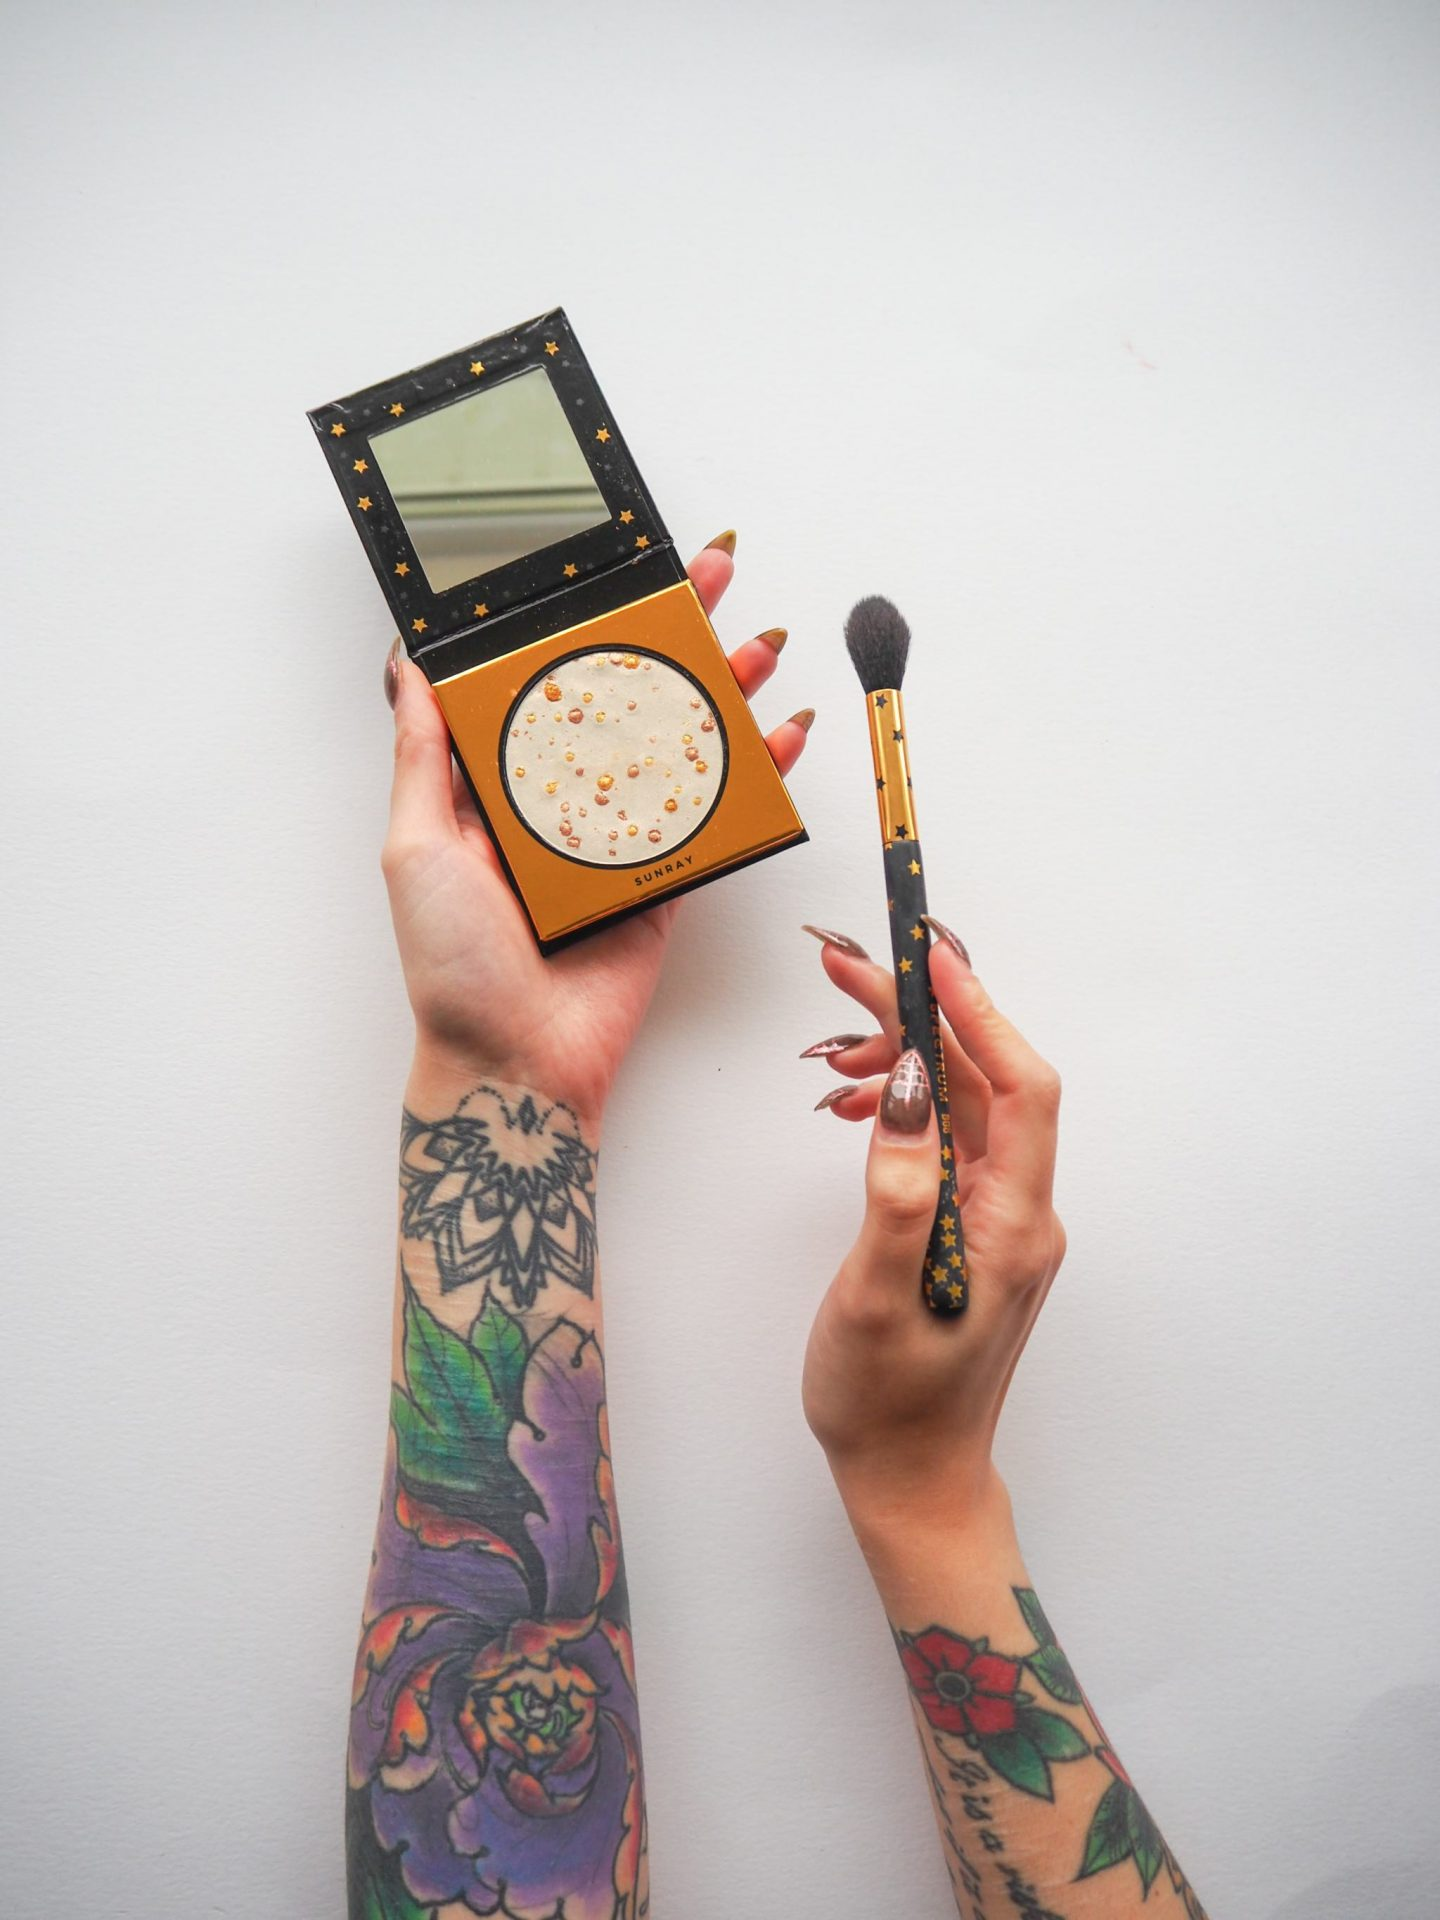 spectrum collections zodiac review - Sunray highlighter